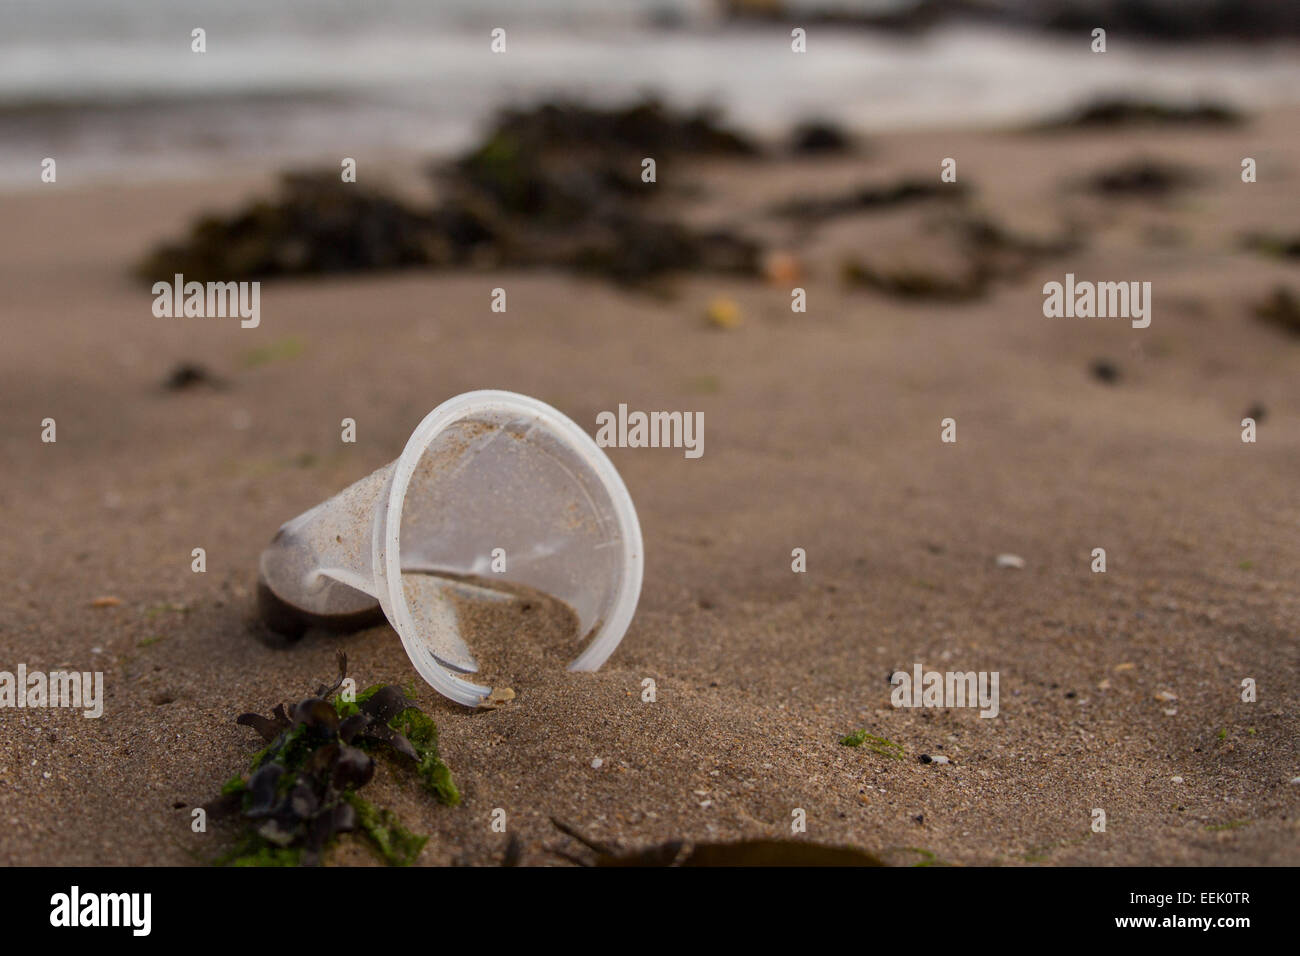 A discarded plastic cup on a beach at Porthcawl, South Wales. - Stock Image